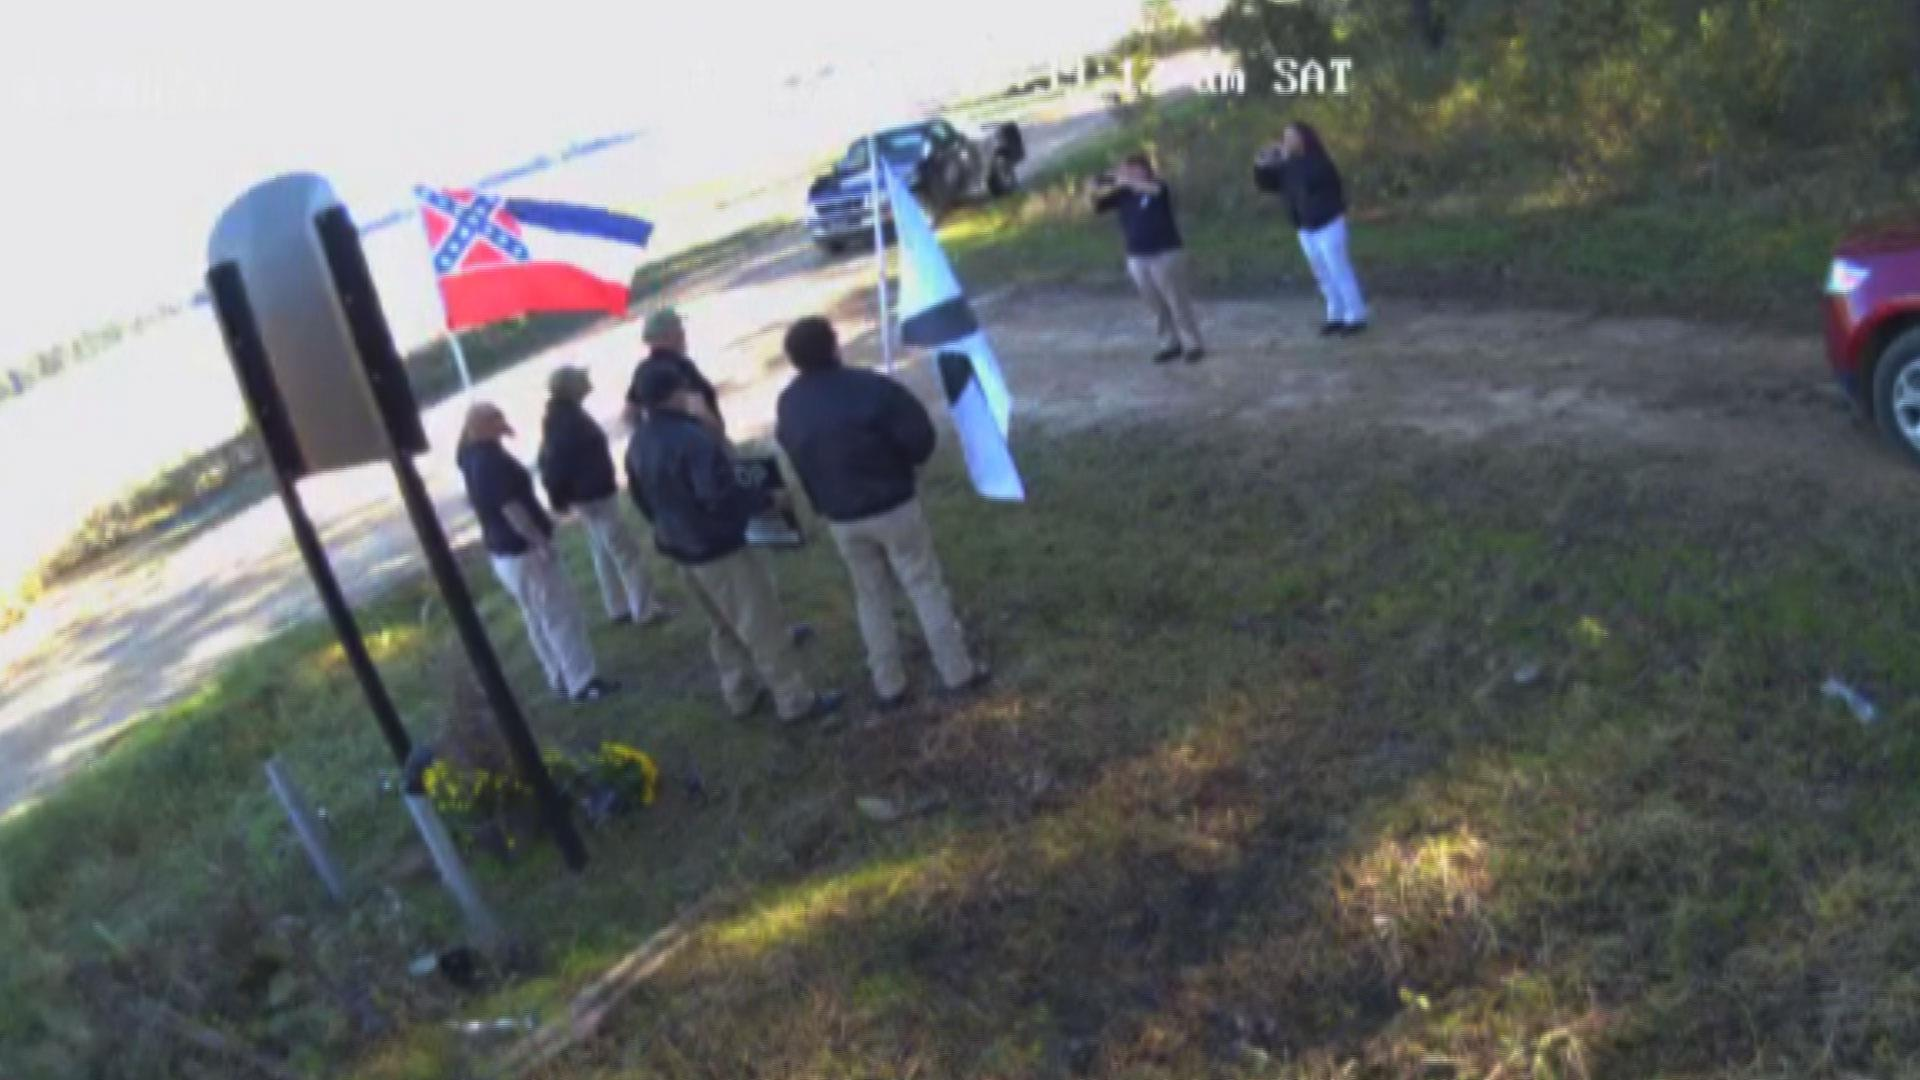 White nationalists caught trying to record video in front of Emmett Till memorial